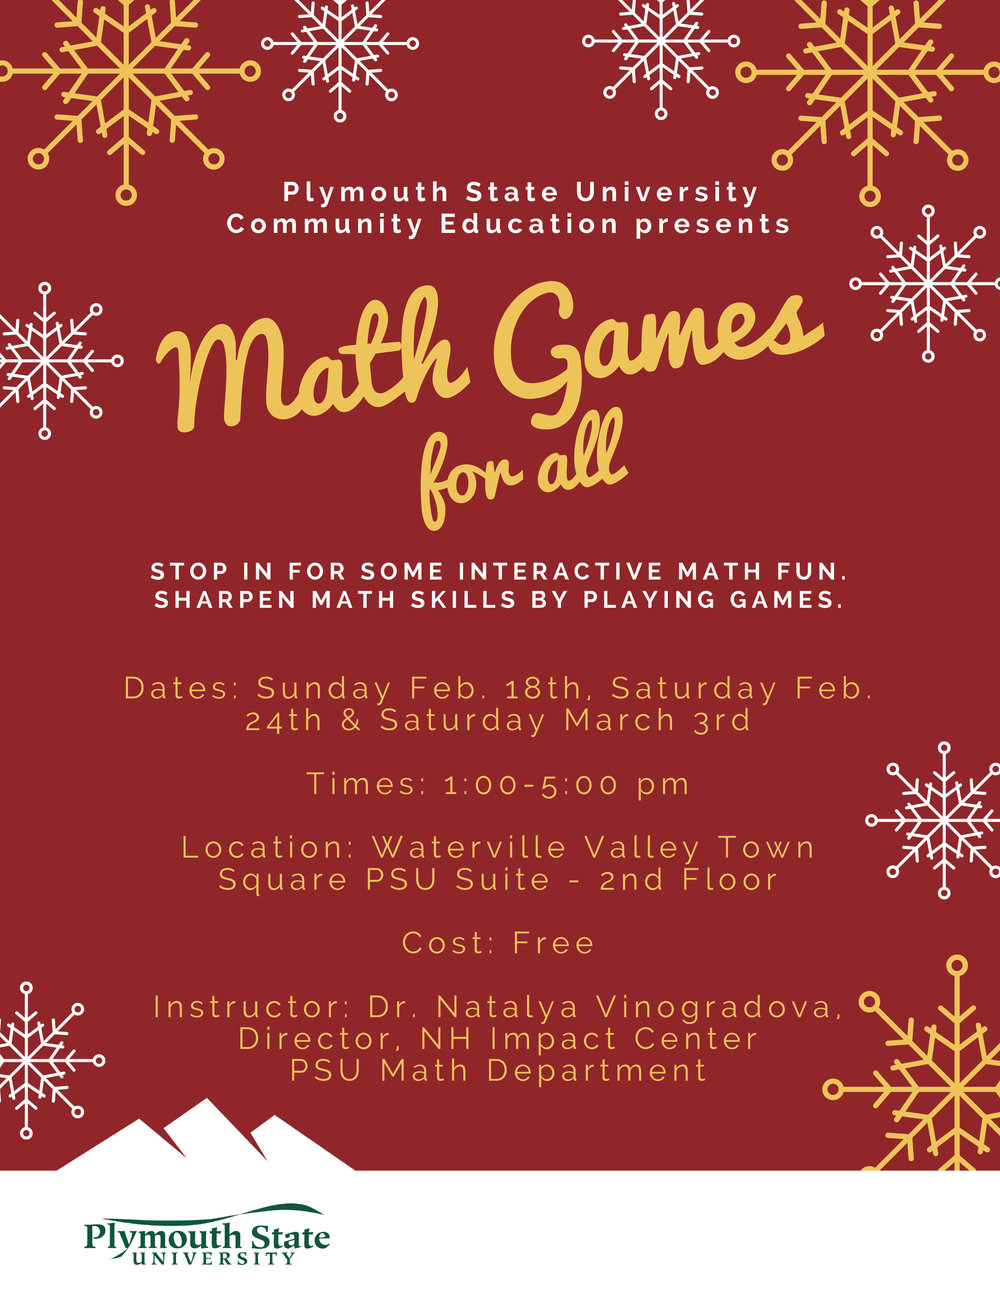 Math Games for All Flyer.jpg